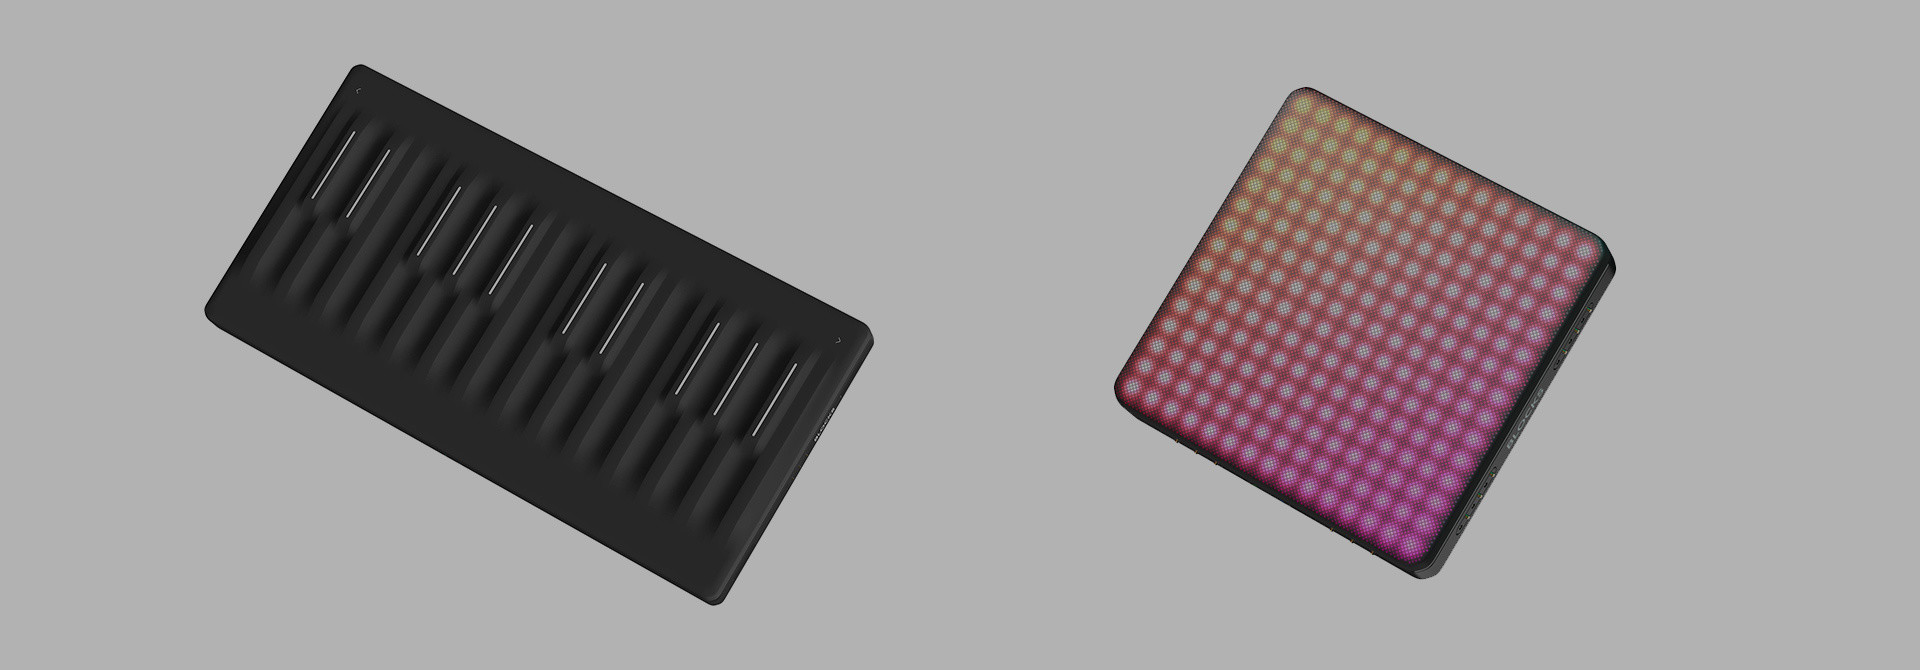 ROLI Block Sleeves